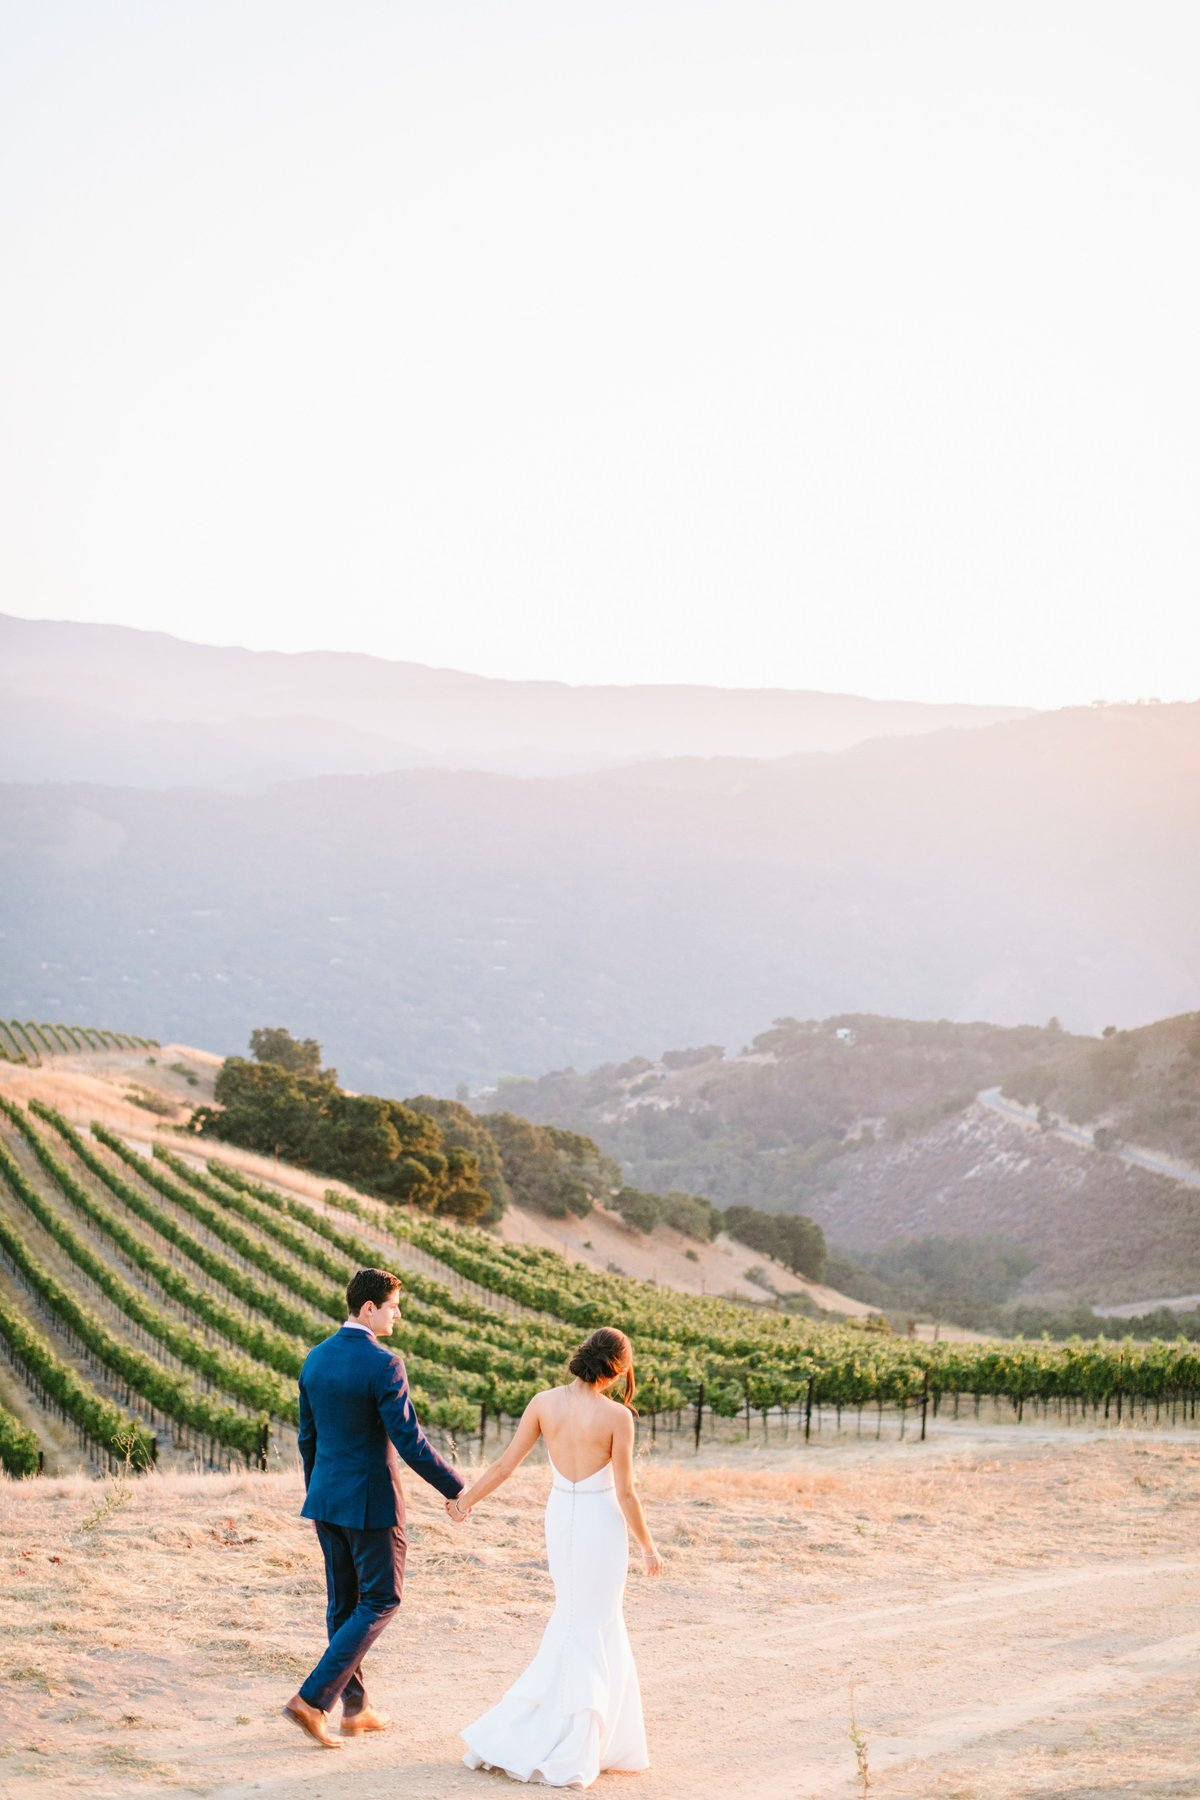 Best California Wedding Photographer-Jodee Debes Photography-328